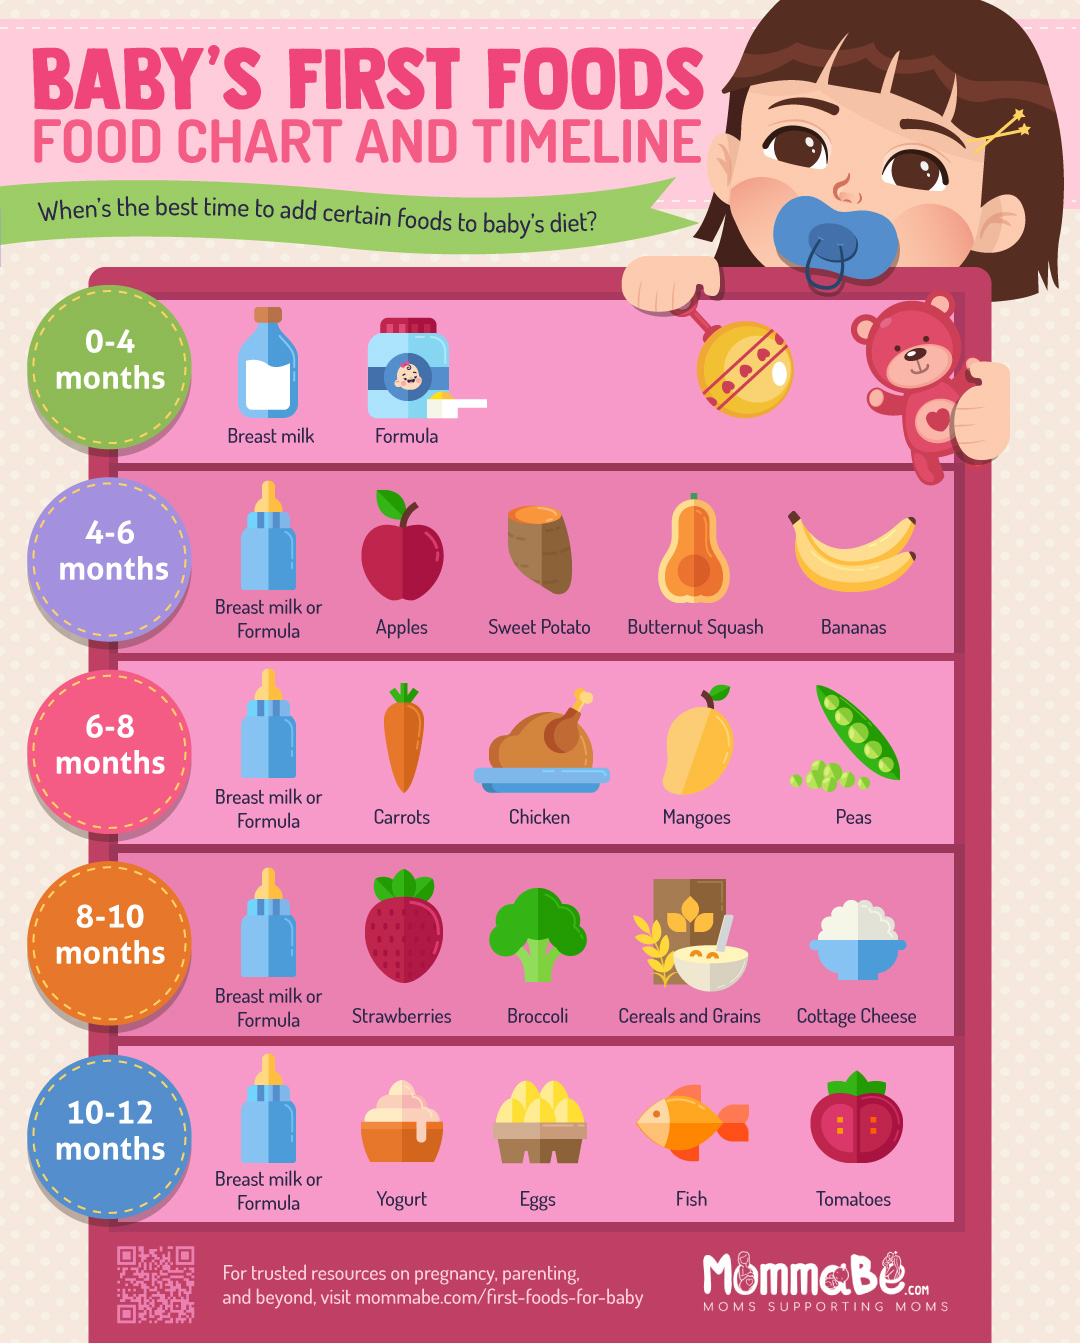 infographic | 9 Healthiest First Foods For Baby + Recipes